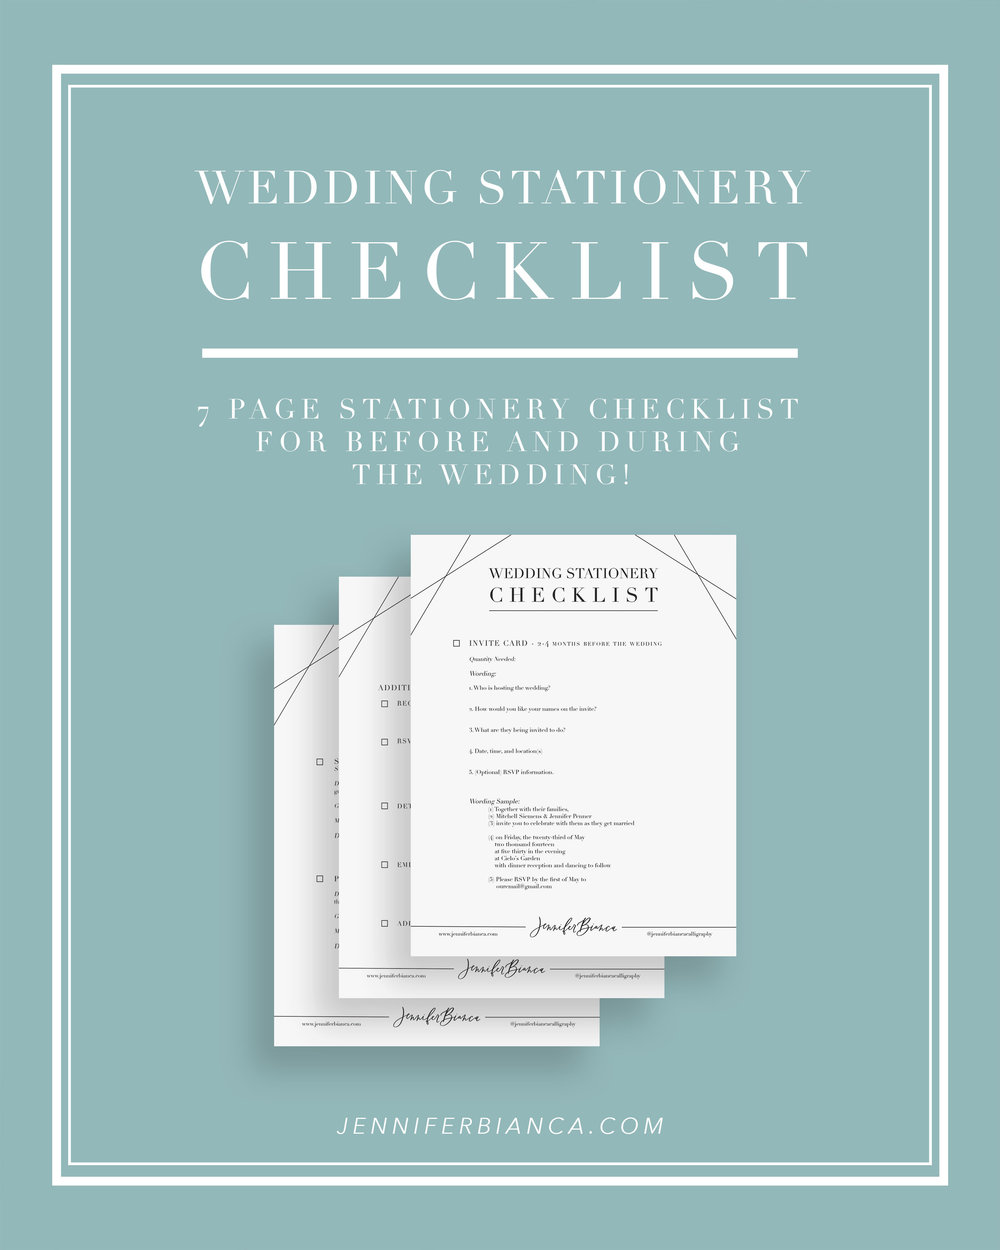 Wedding stationery checklist by jenniferbianca.com